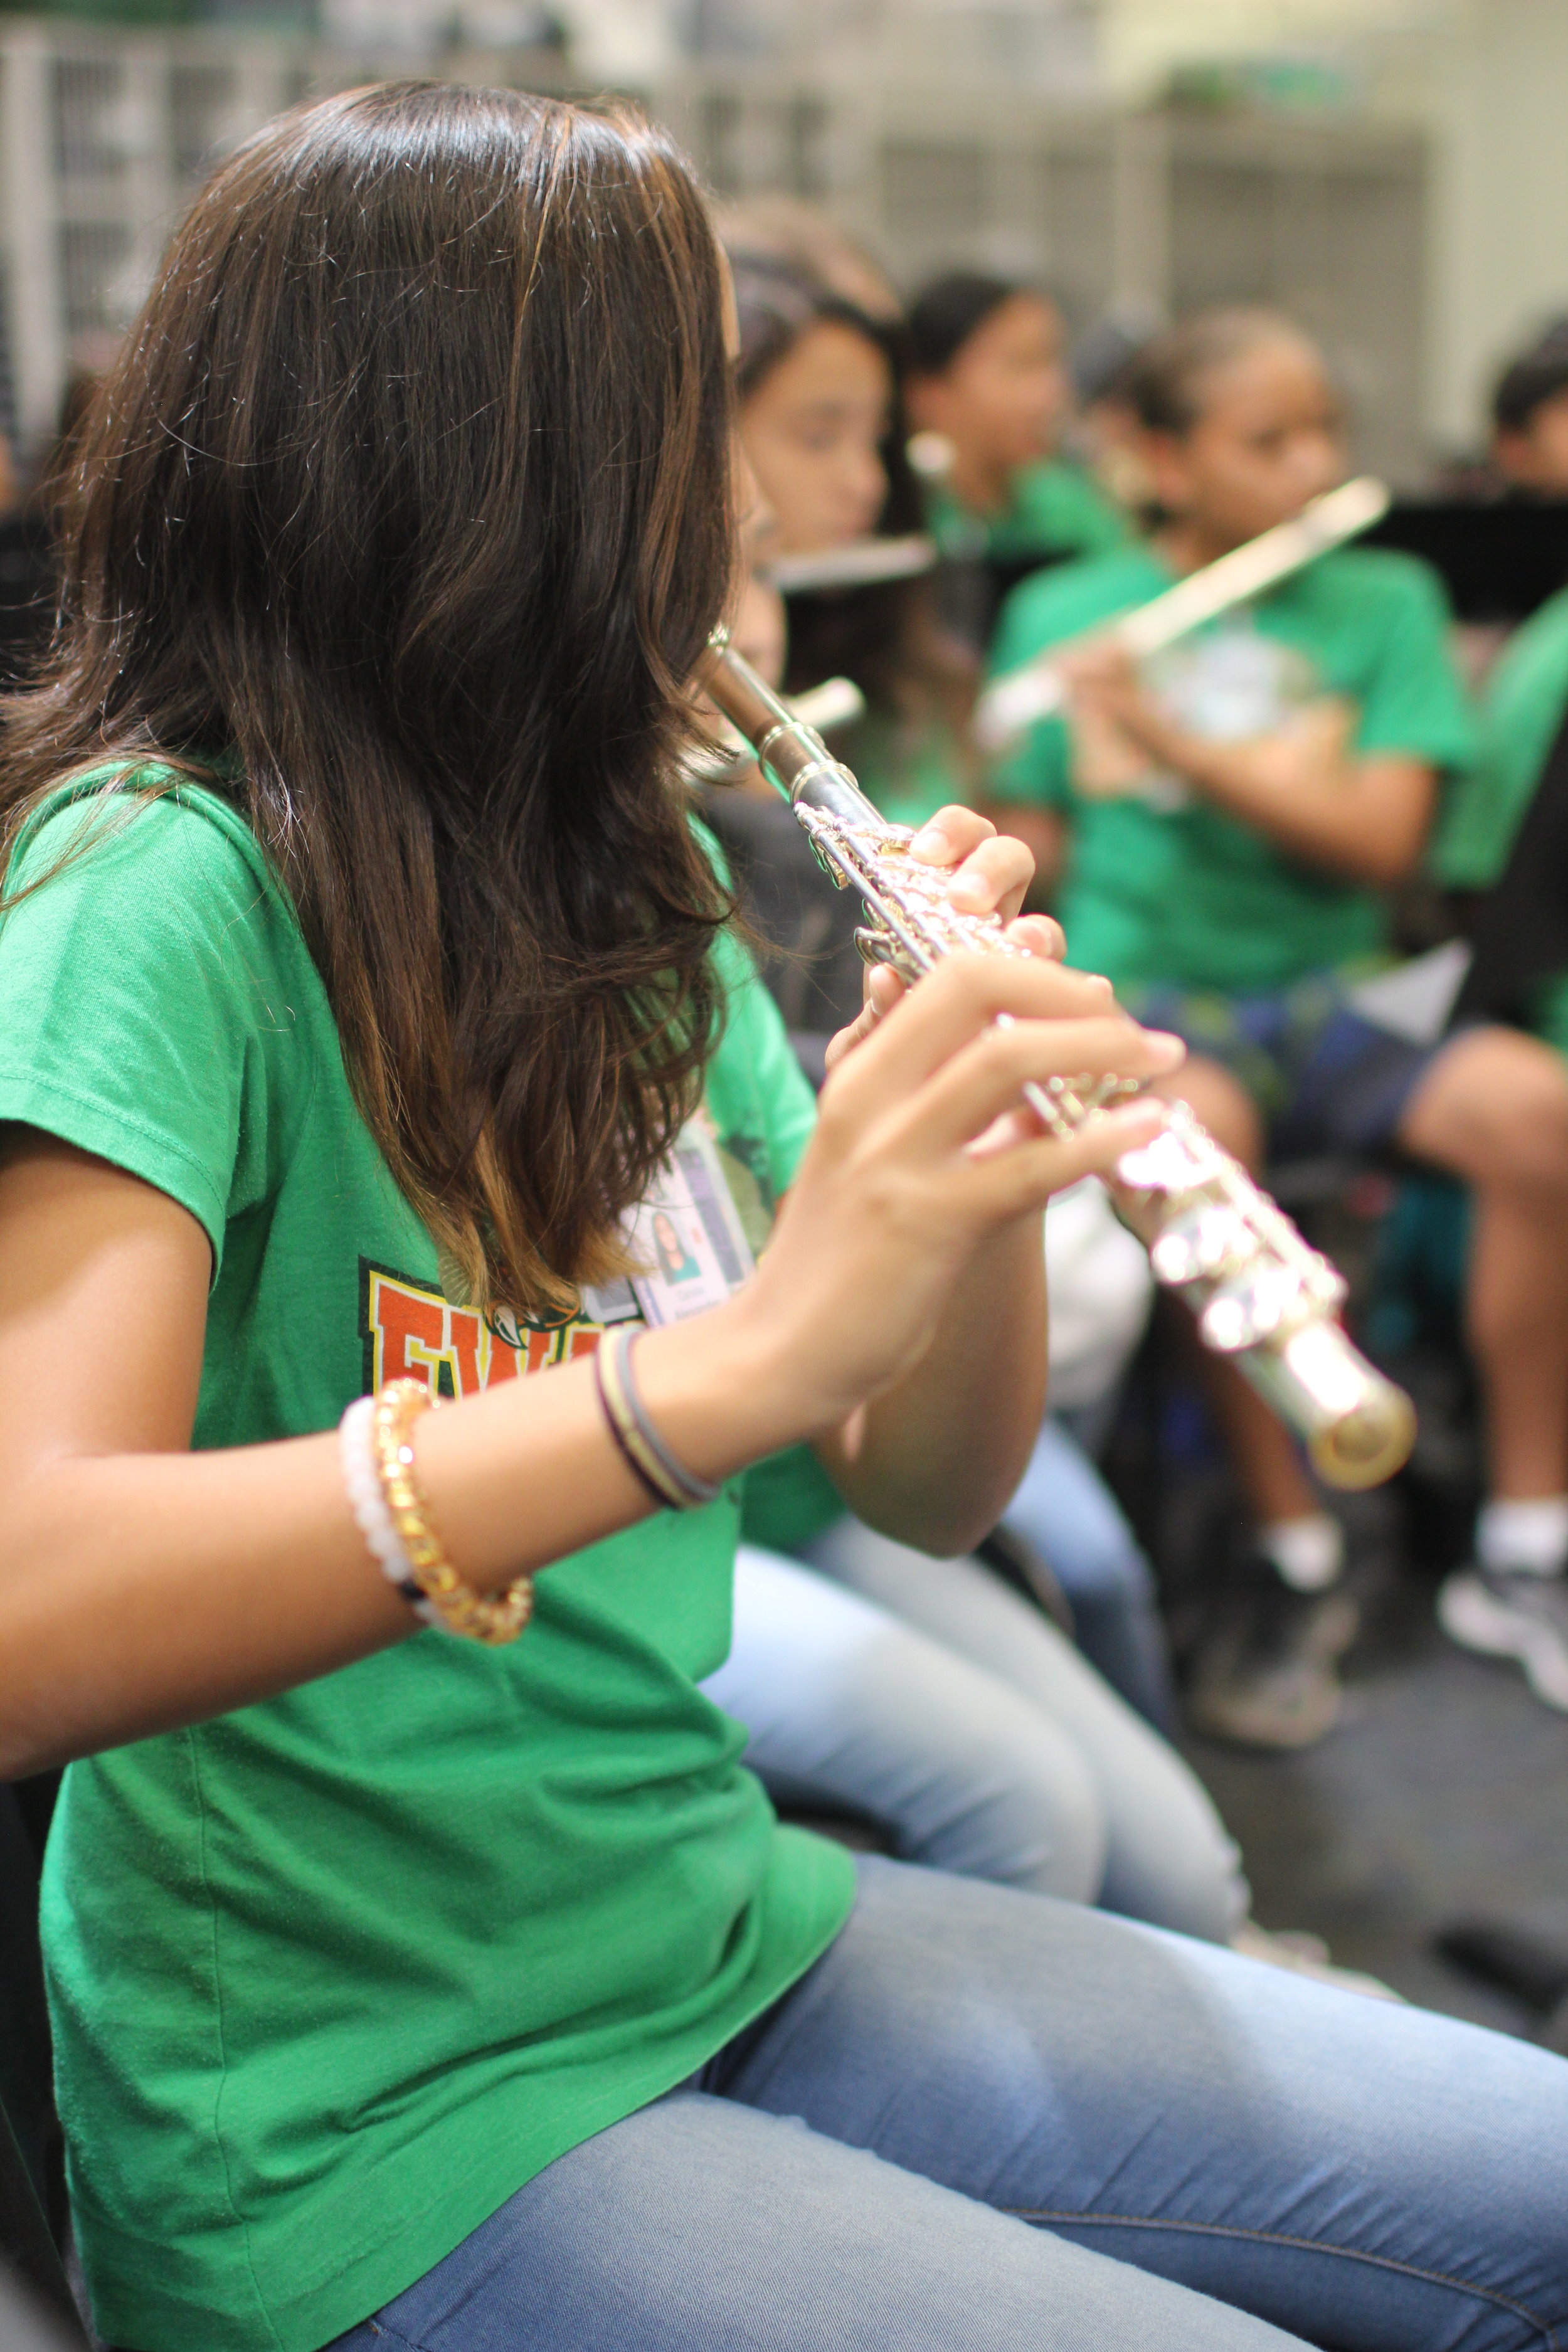 Ewa Makai student in band class playing a flute.